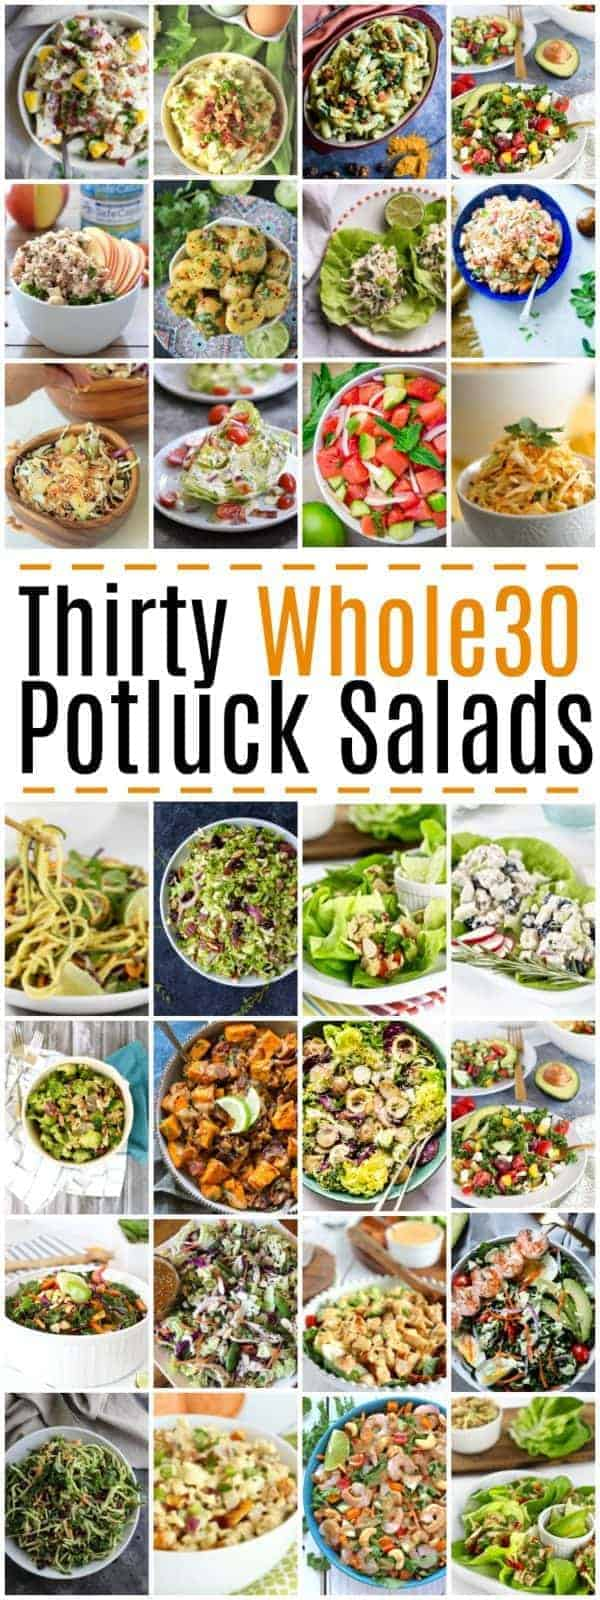 Pinterest Image for 30 Whole30 Potluck Salads